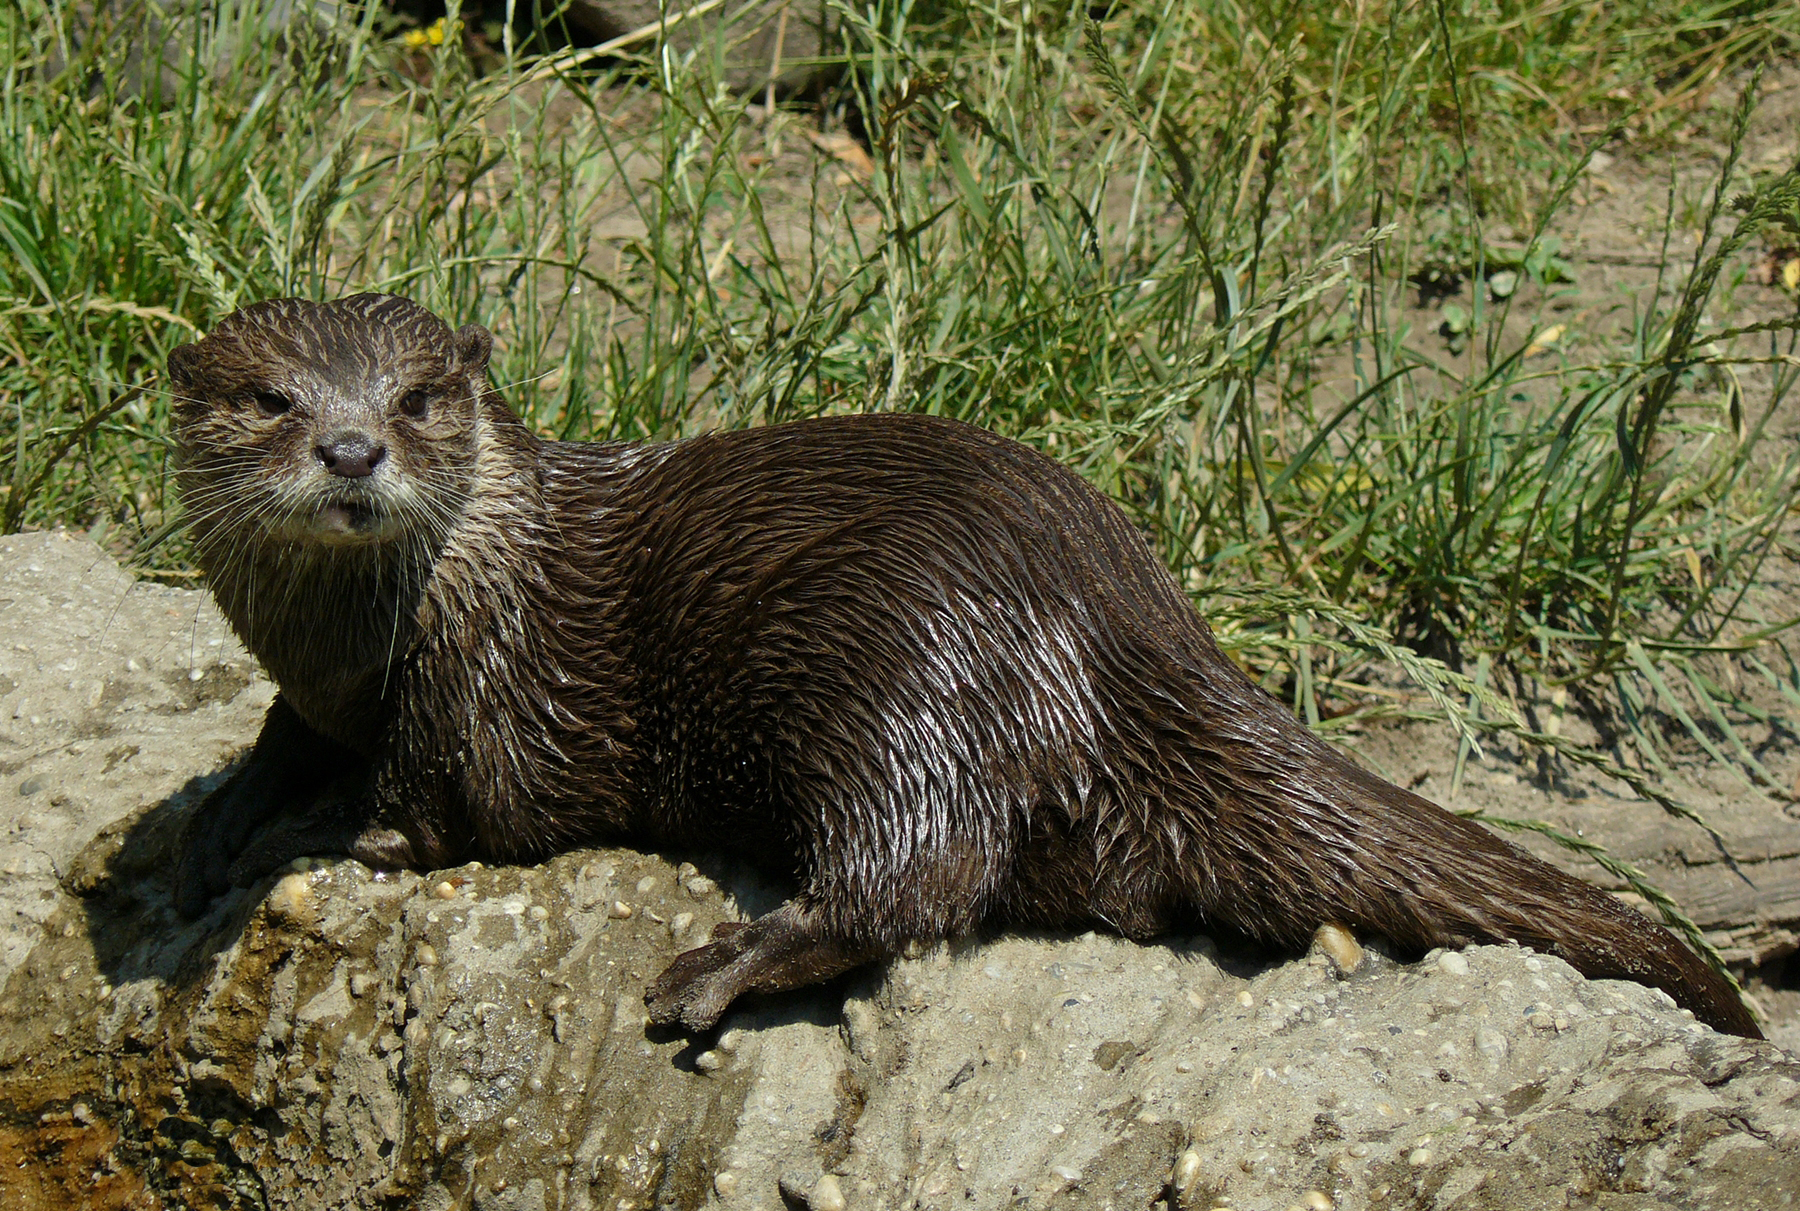 https://upload.wikimedia.org/wikipedia/commons/a/ac/Oriental_clawless_otter.jpg